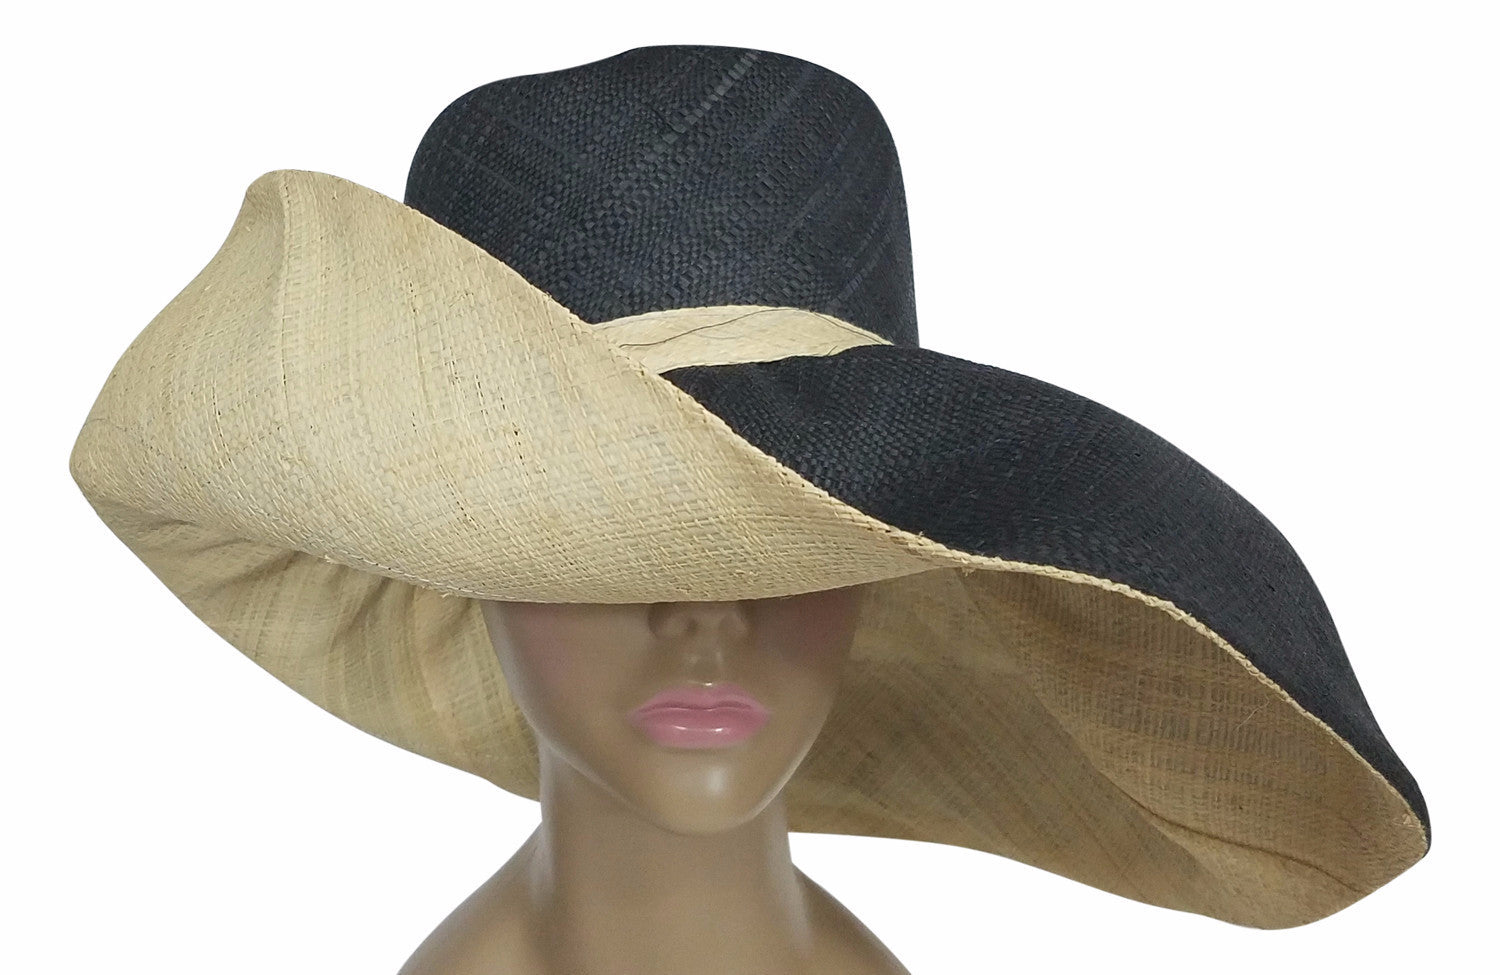 Baako: Authentic African Hand Made Black and Natural Madagascar Big Brim Raffia Sun Hat